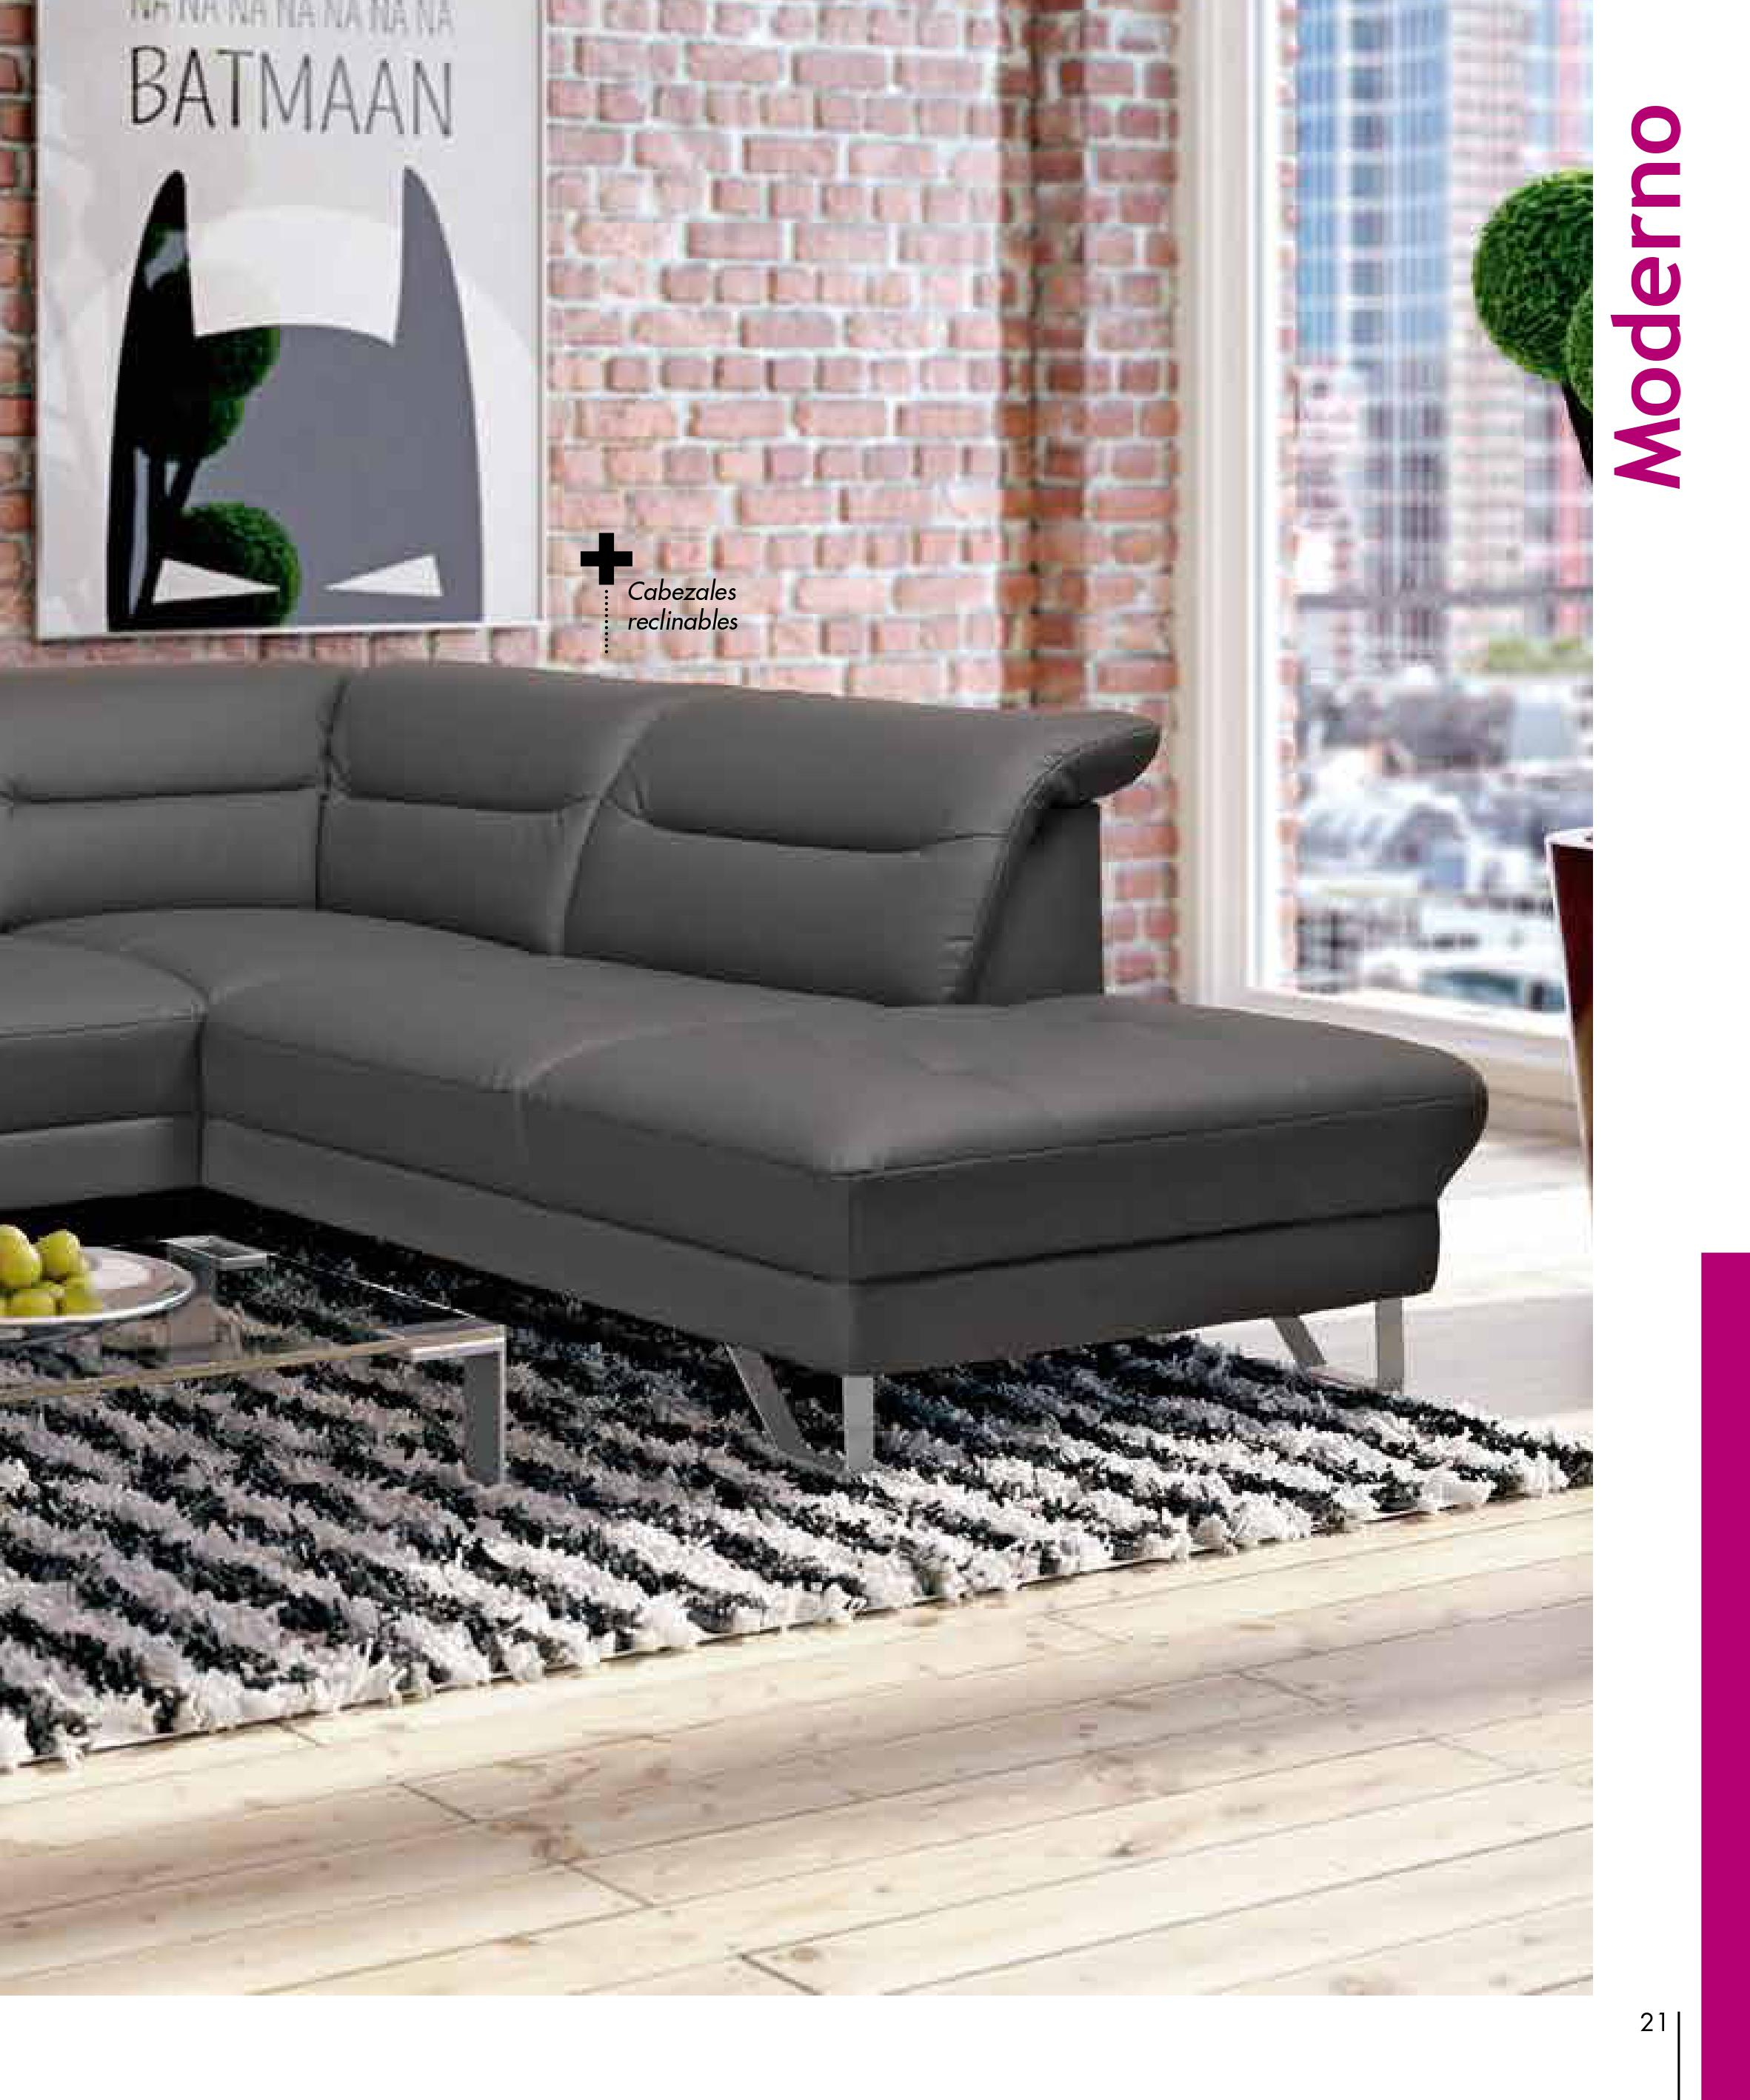 Sofas conforama 201521 for Sofas conforama catalogo